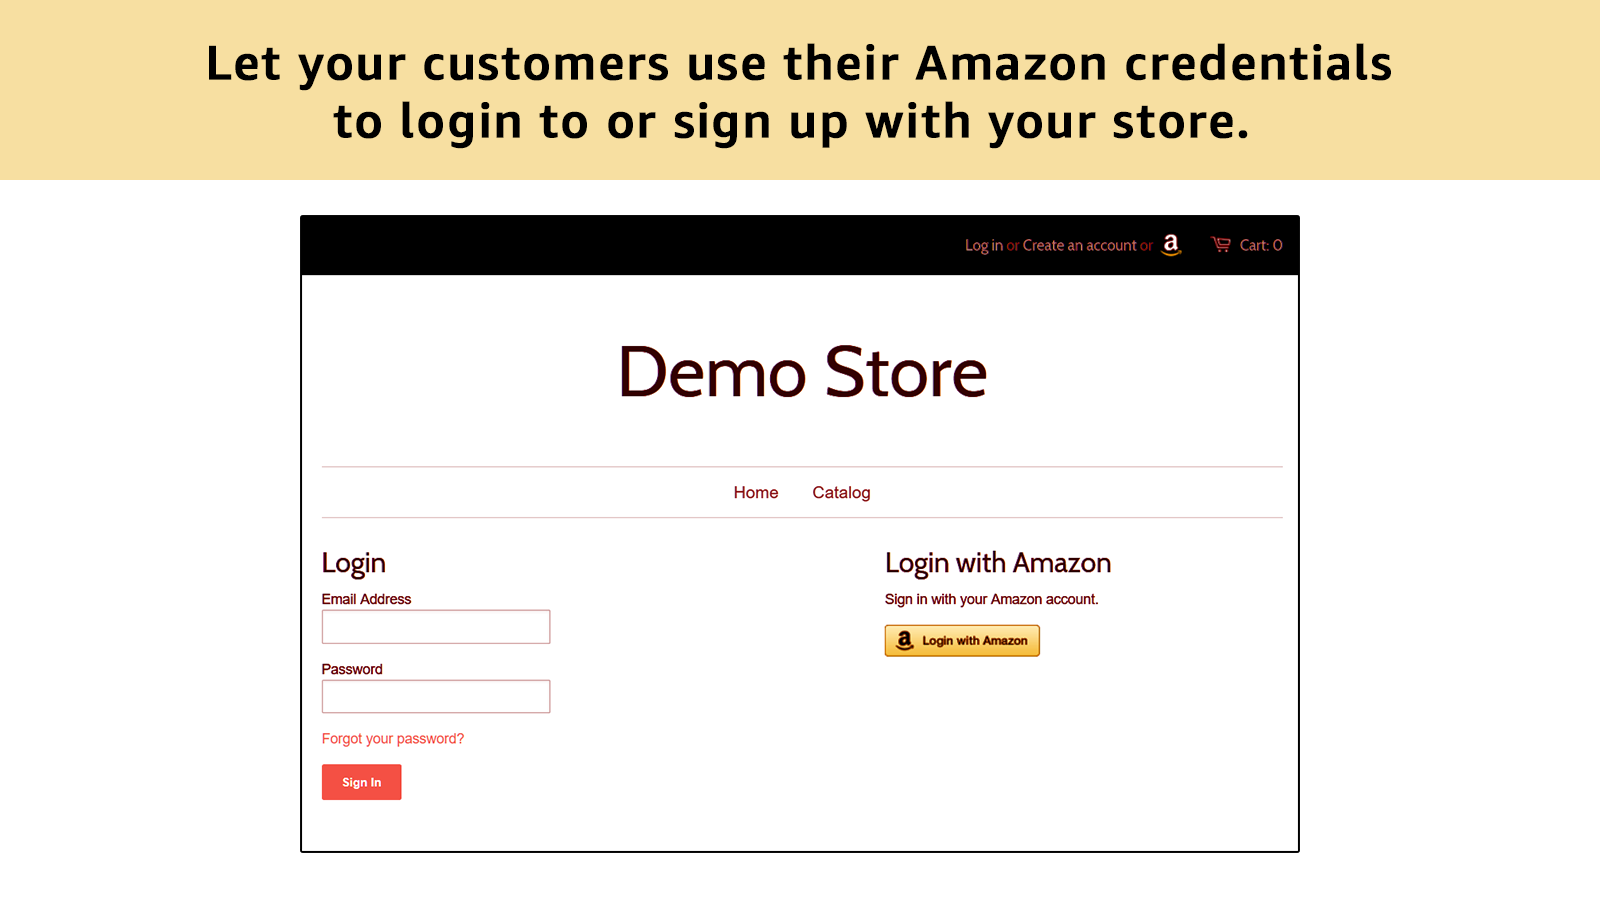 Now you can add an Amazon button for easy login and sign-up.